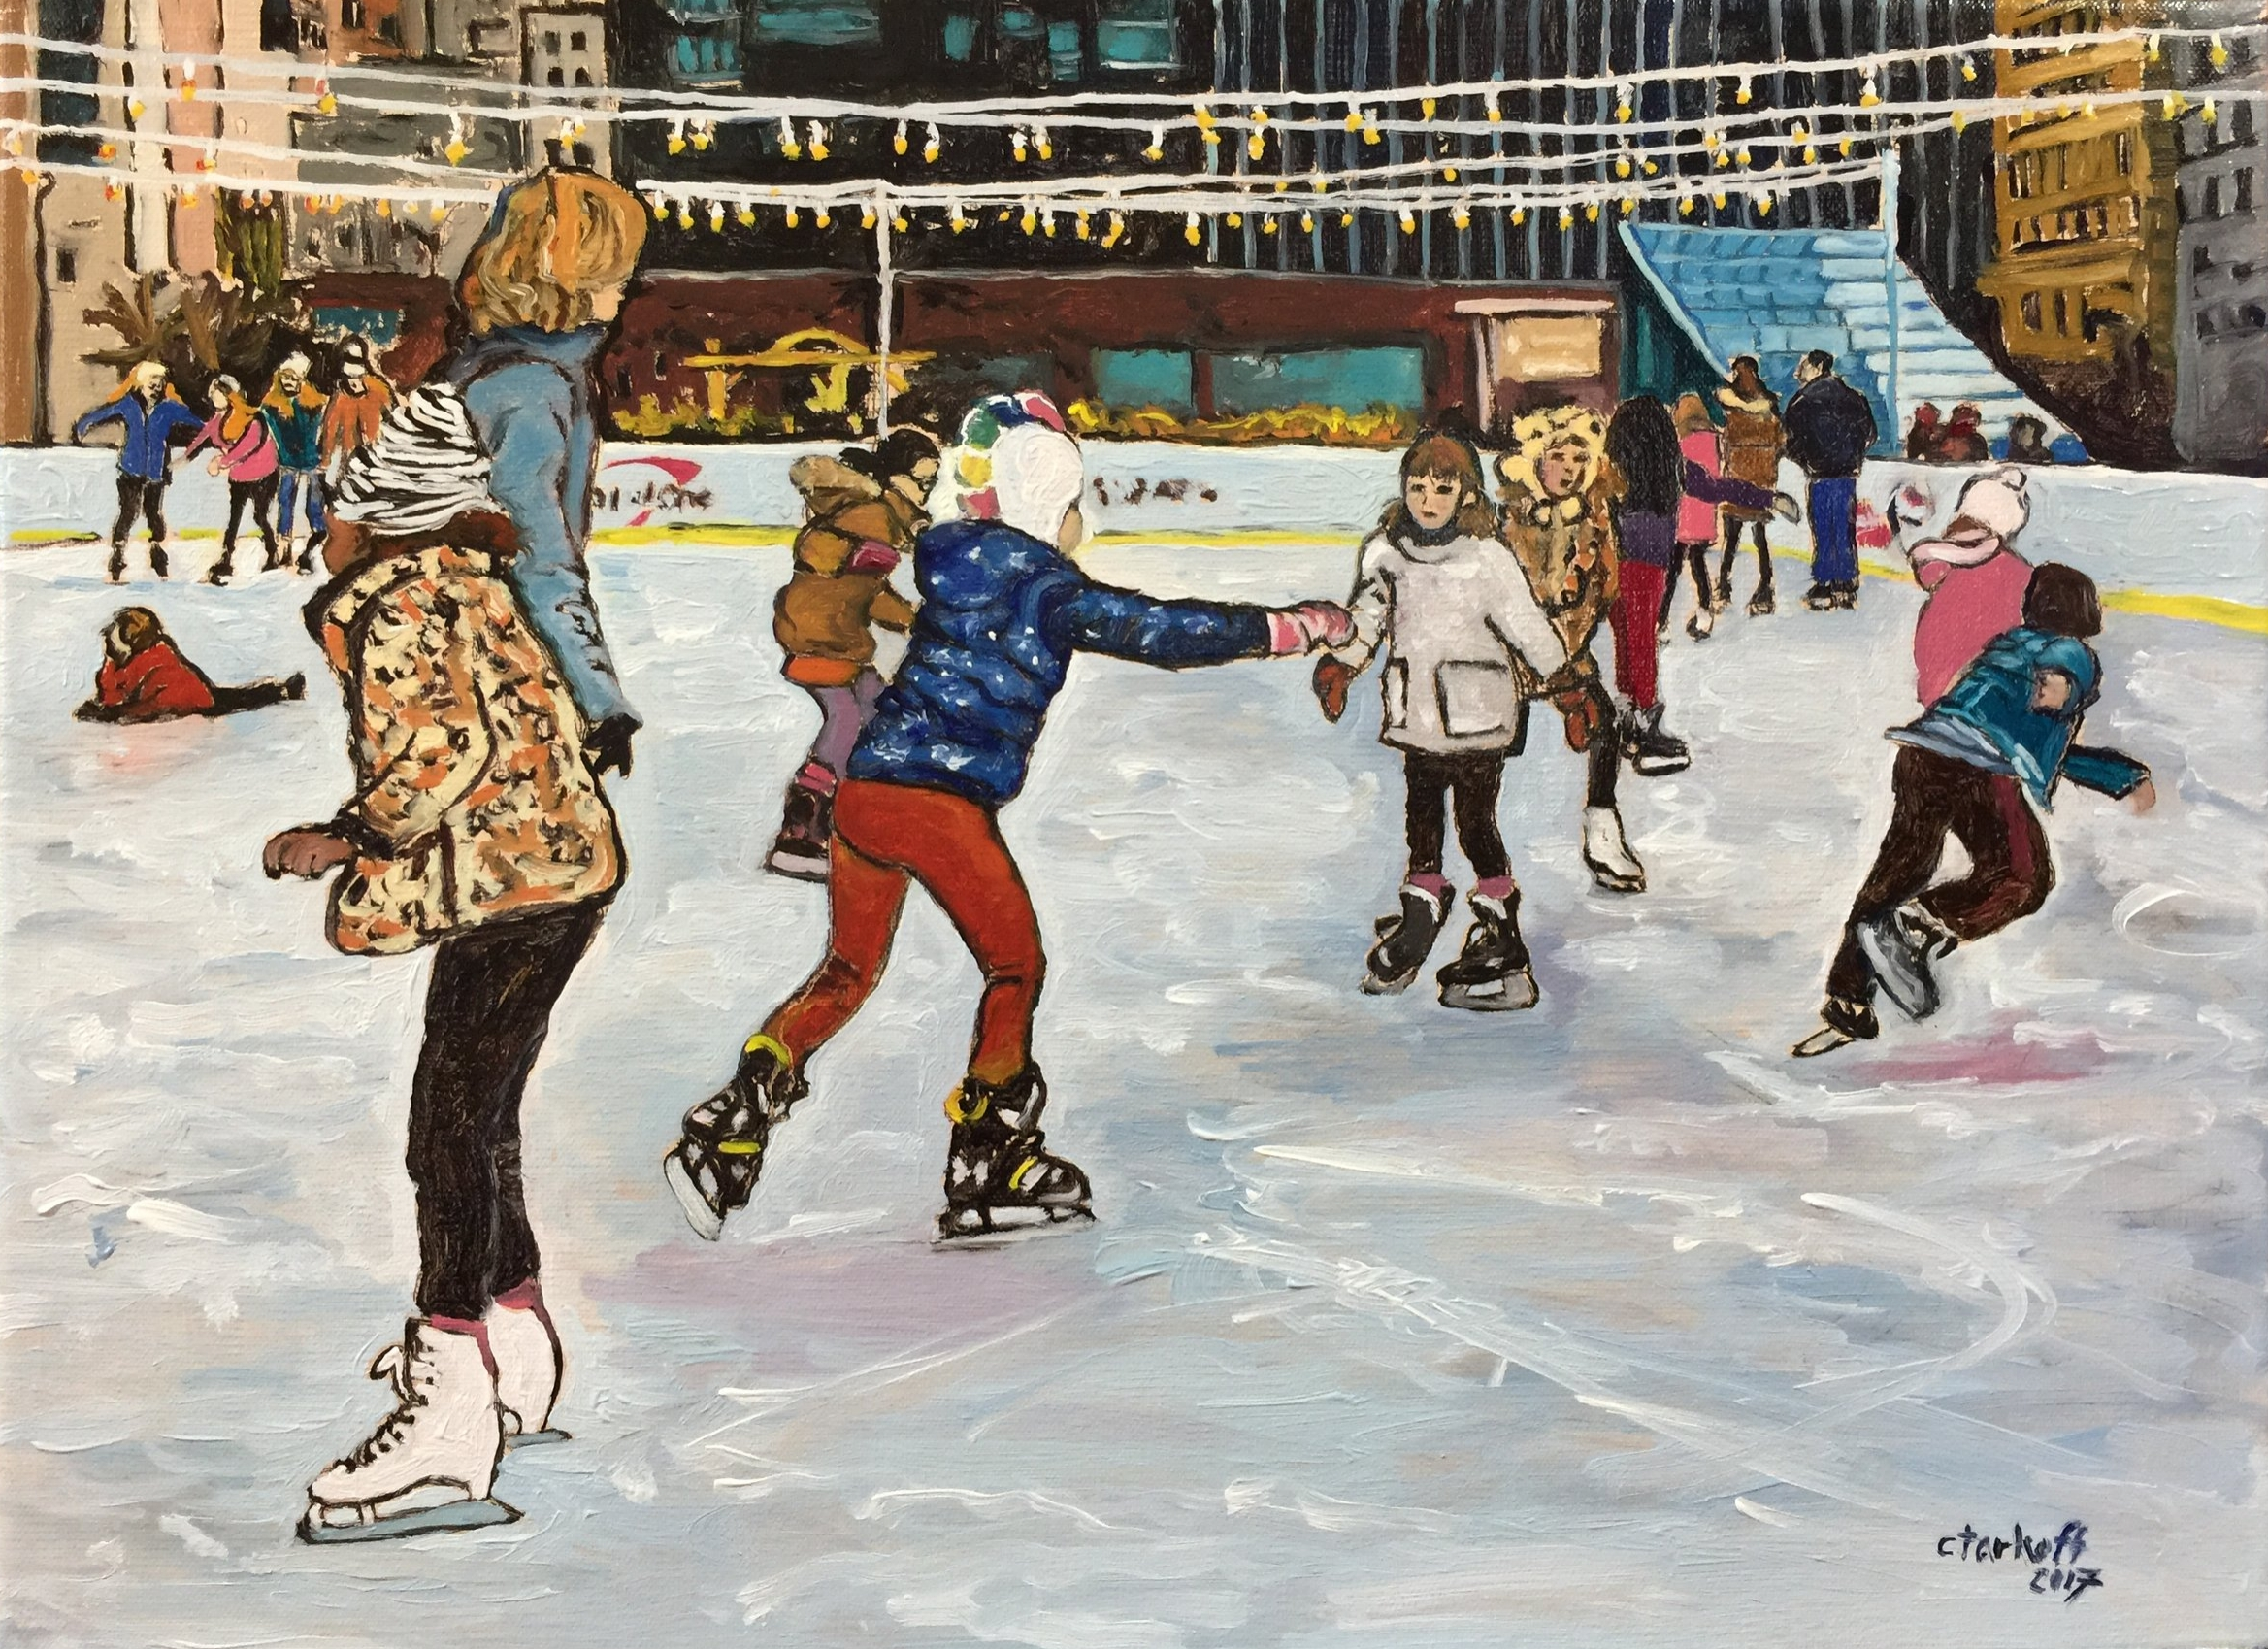 Ice Skating at Dilworth Park on a Sunday Afternoon, 12x16, oil on stretched canvas, will be hanging at the Main Line Art Center Members Exhibition. It is framed and ready to hang. Available for sale - $576.